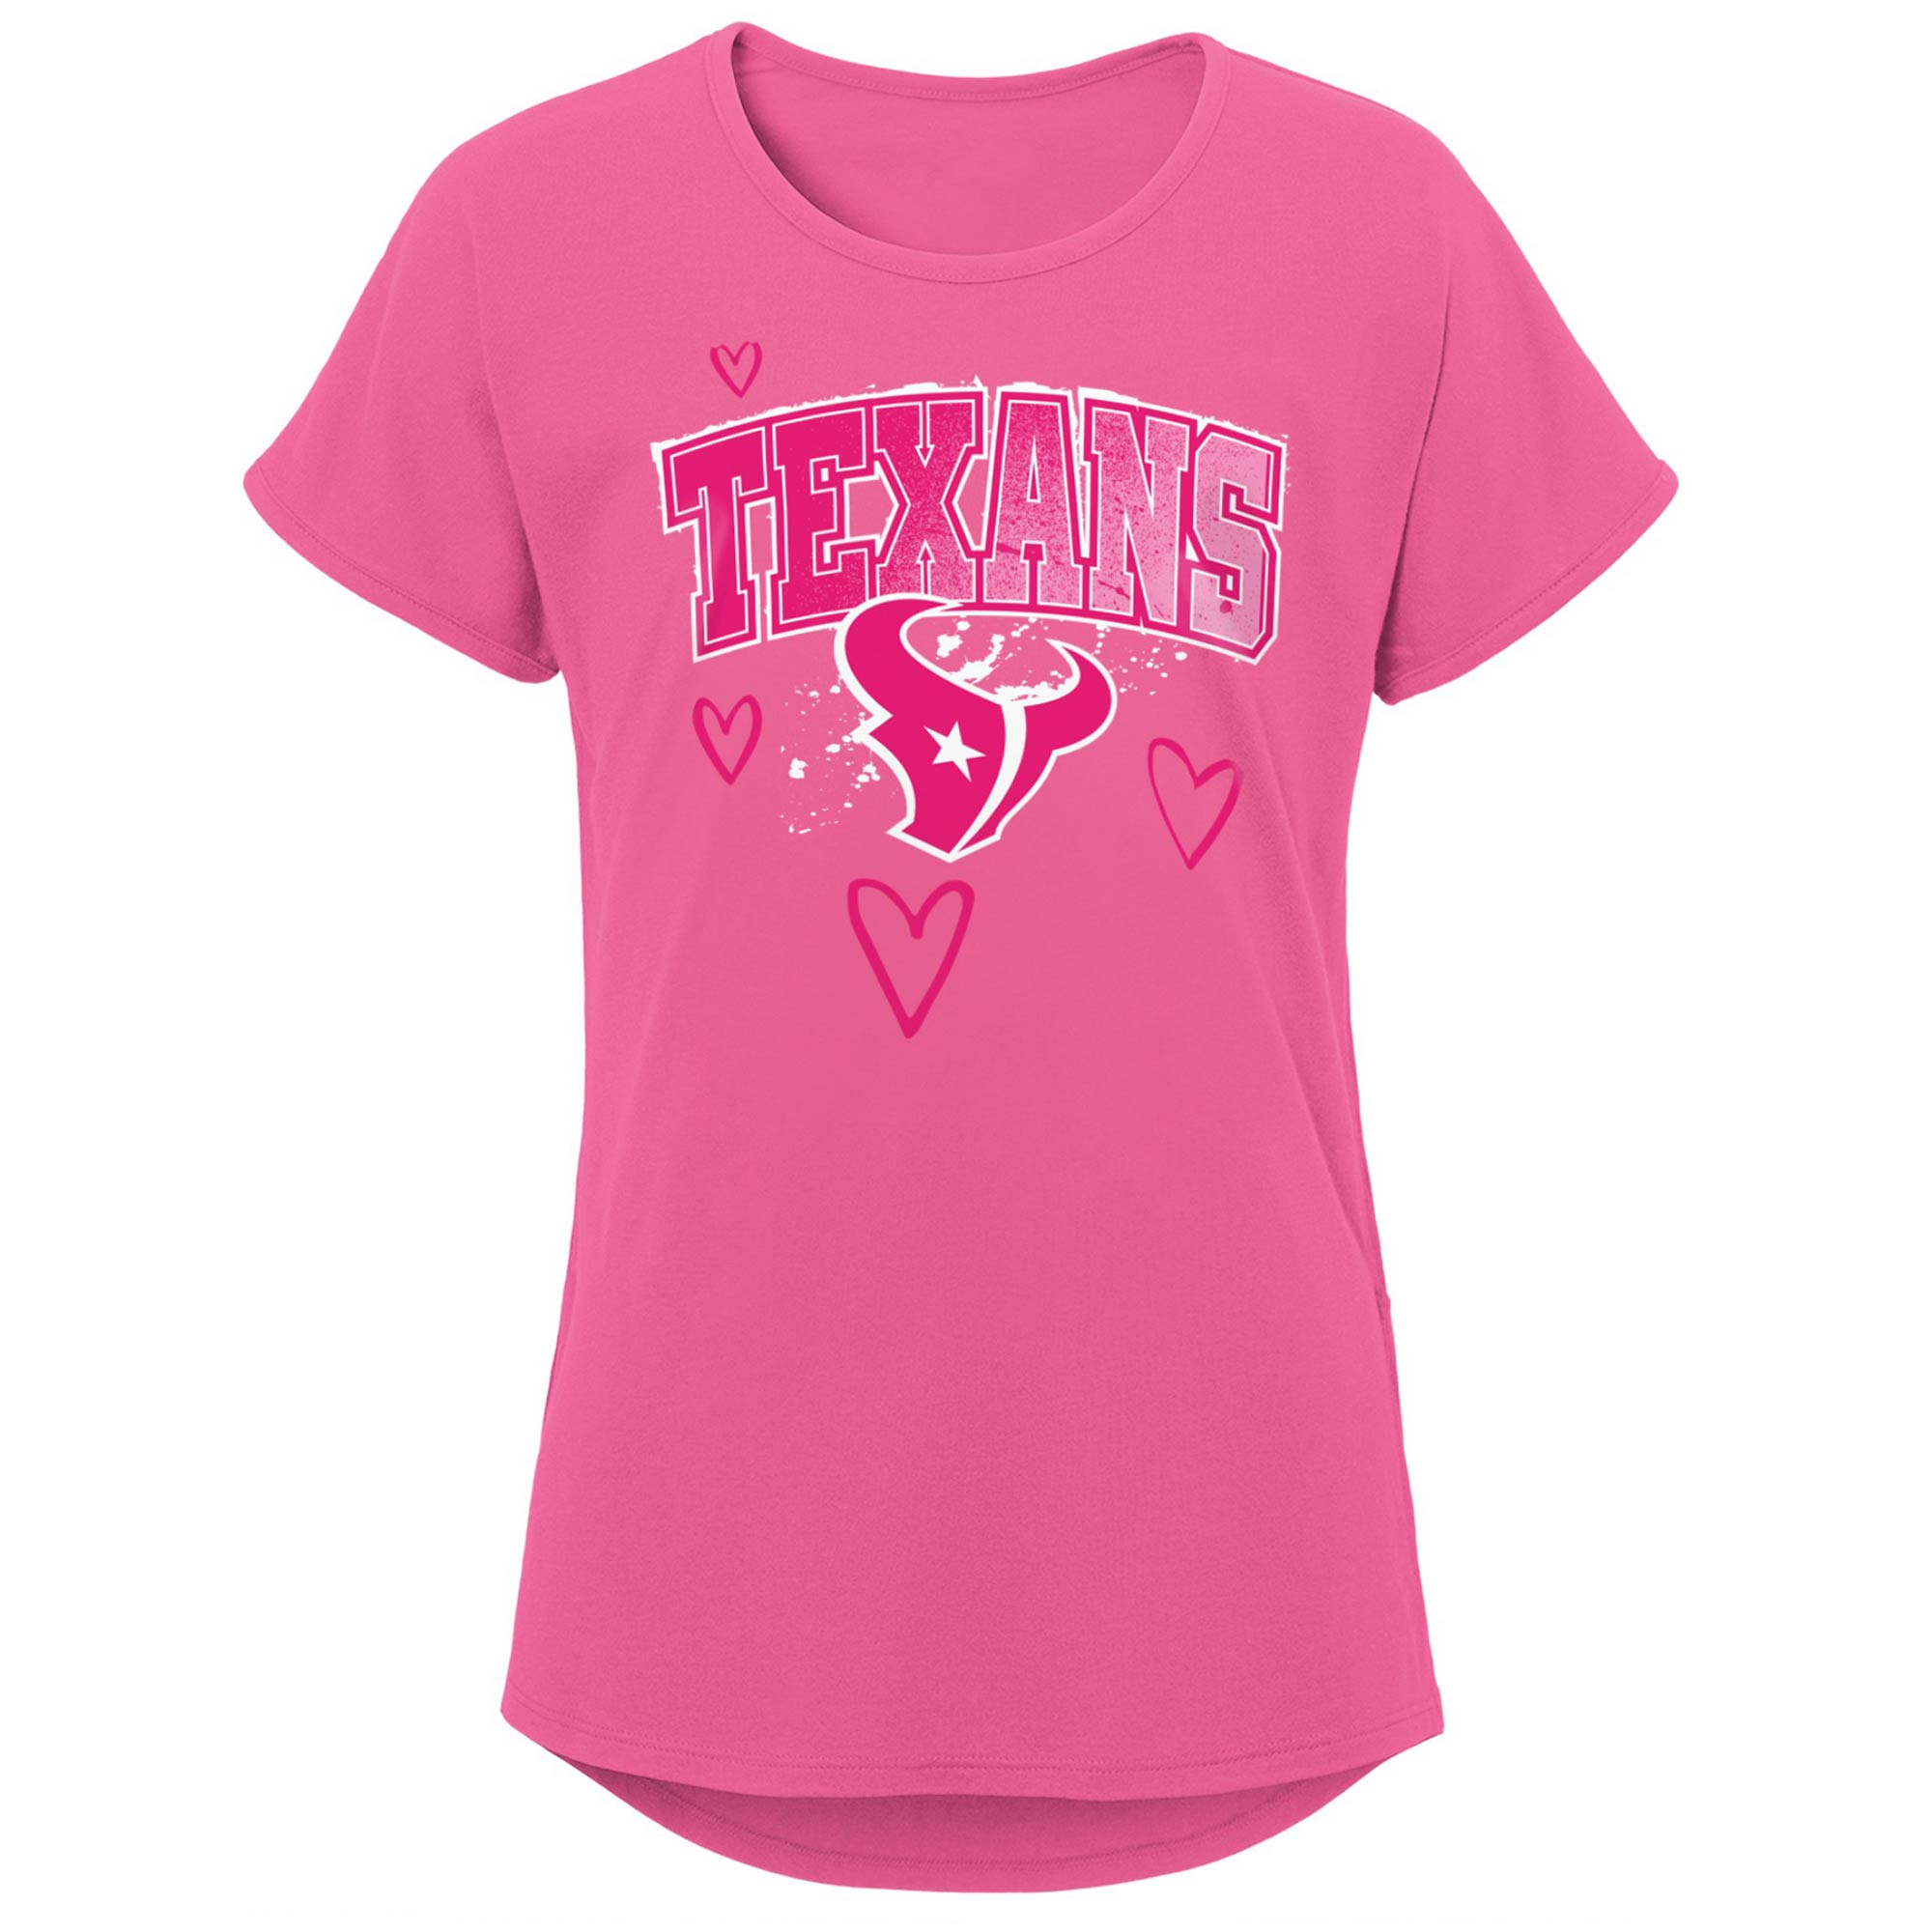 Houston Texans Girls Youth Go-Getter T-Shirt - Pink